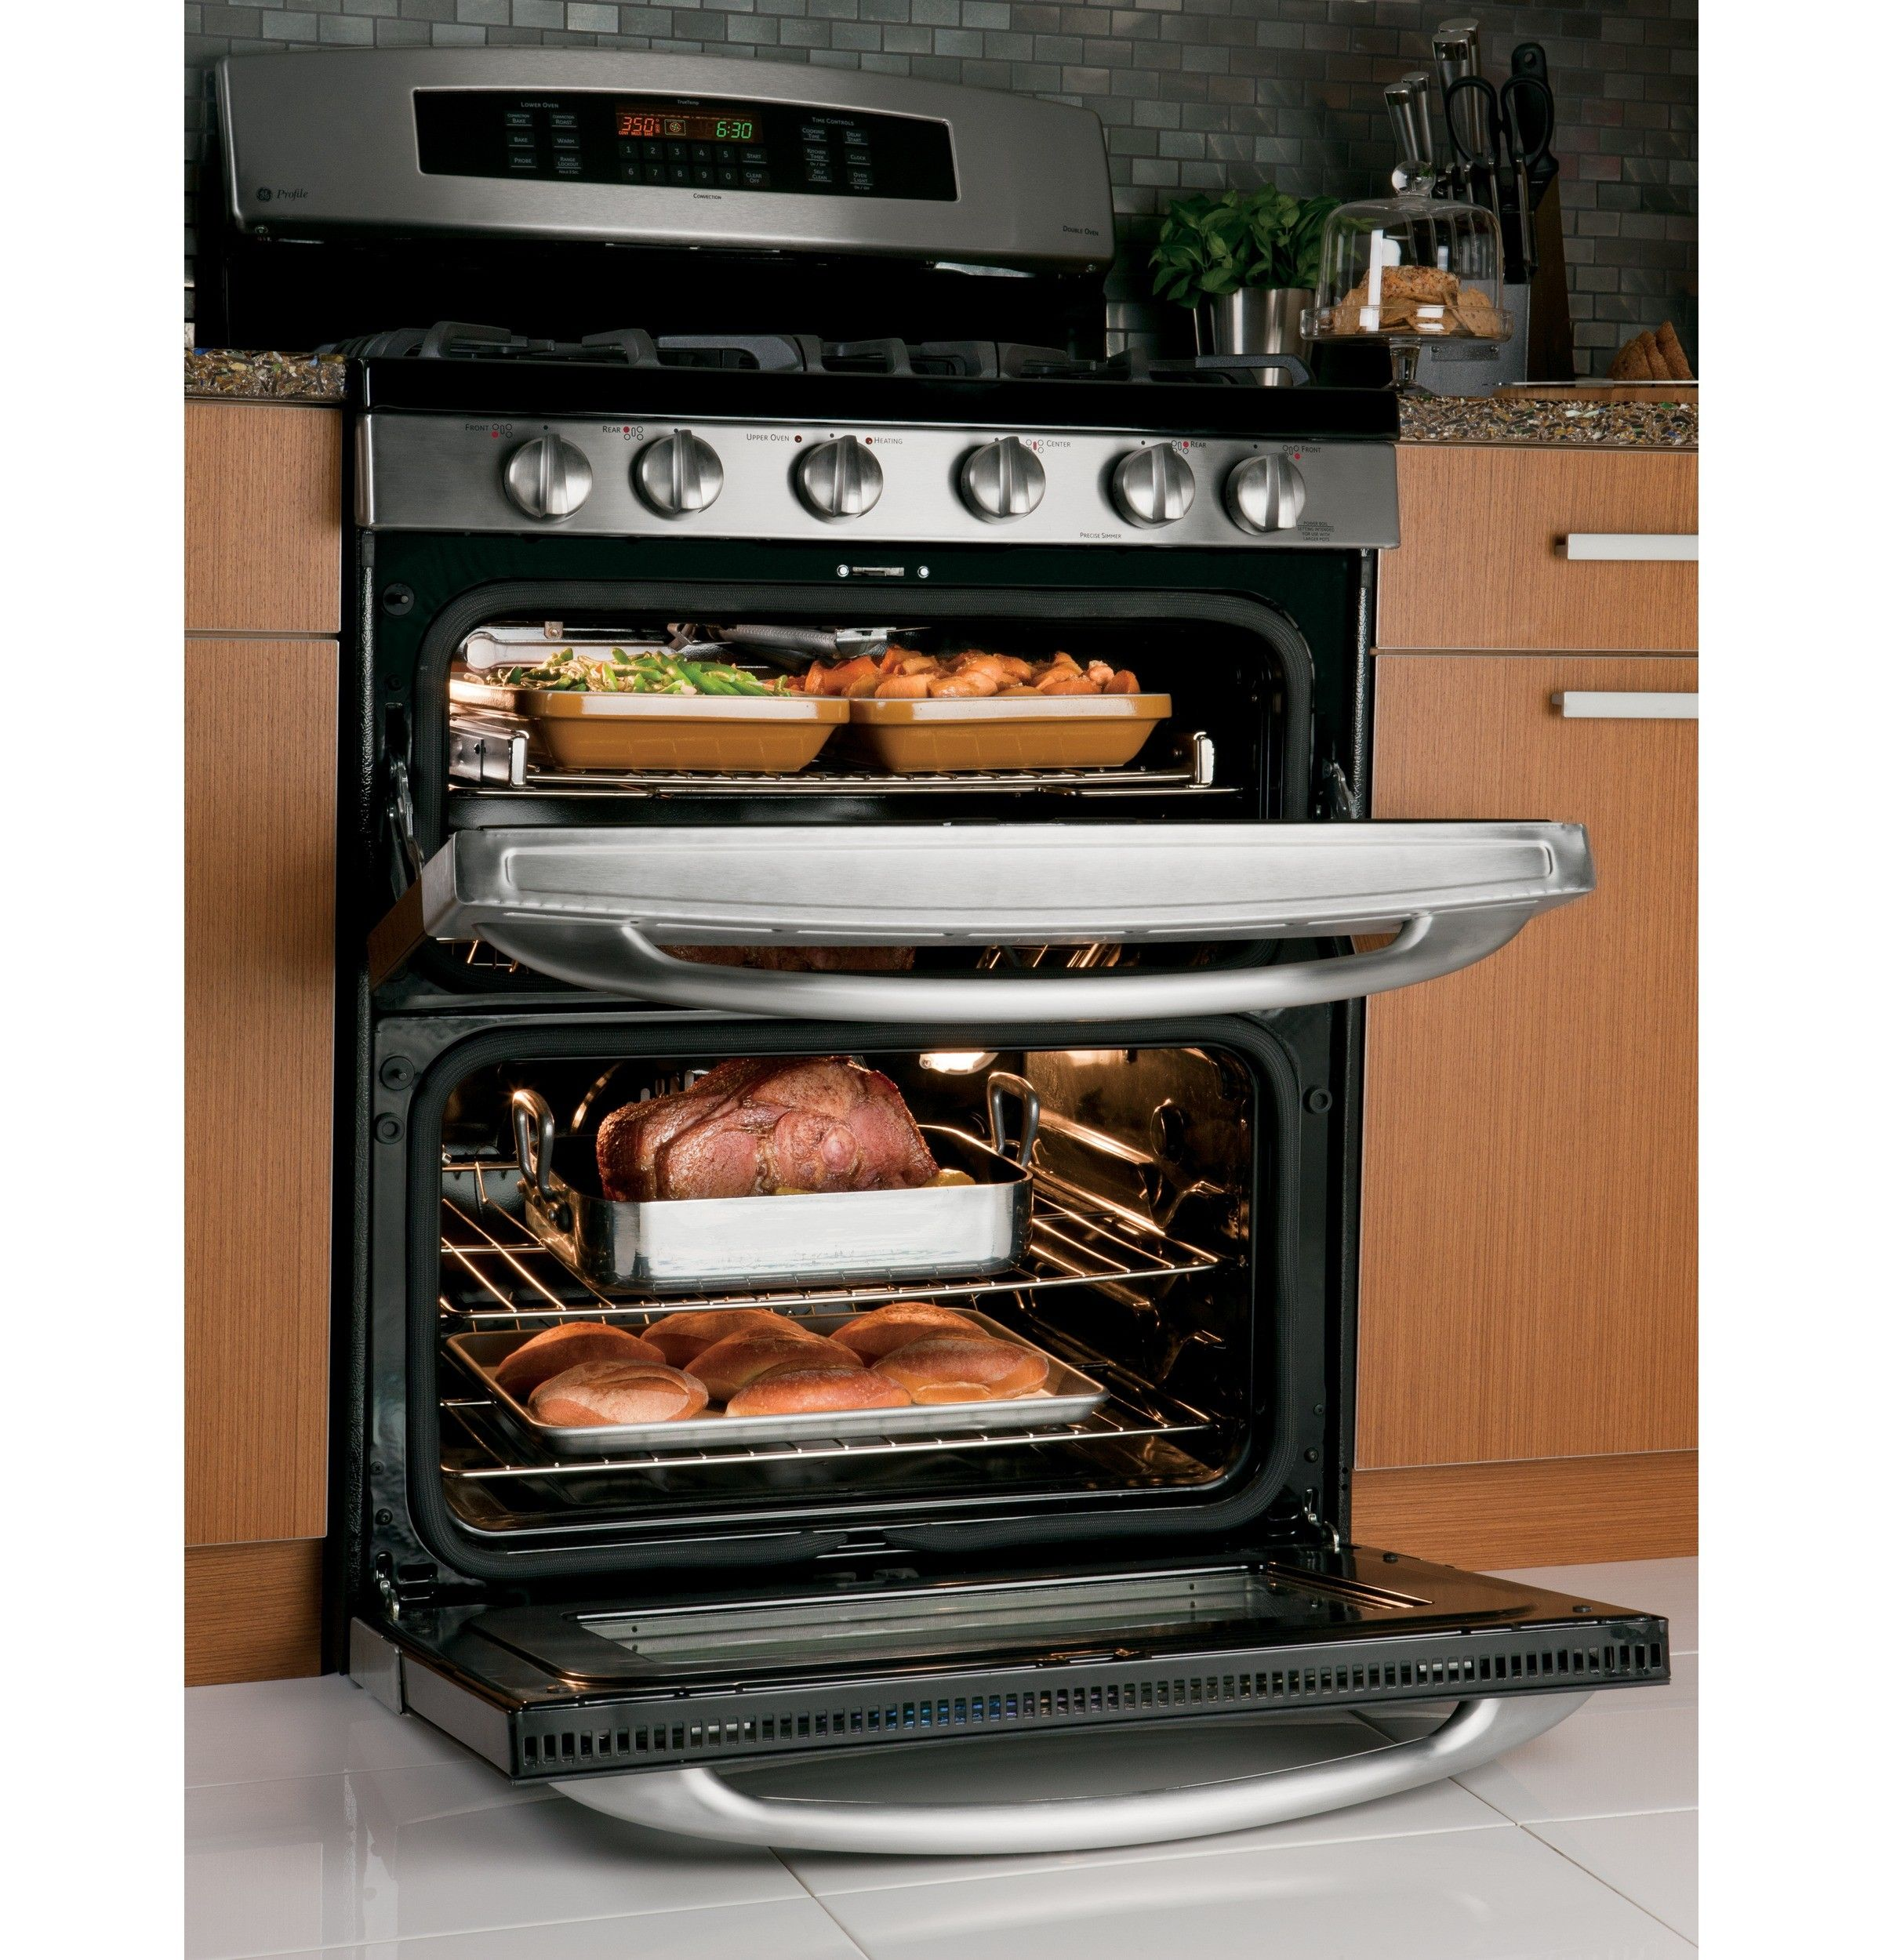 Ge pgb950sefss | For the Home | Double oven range, Kitchen tops ...